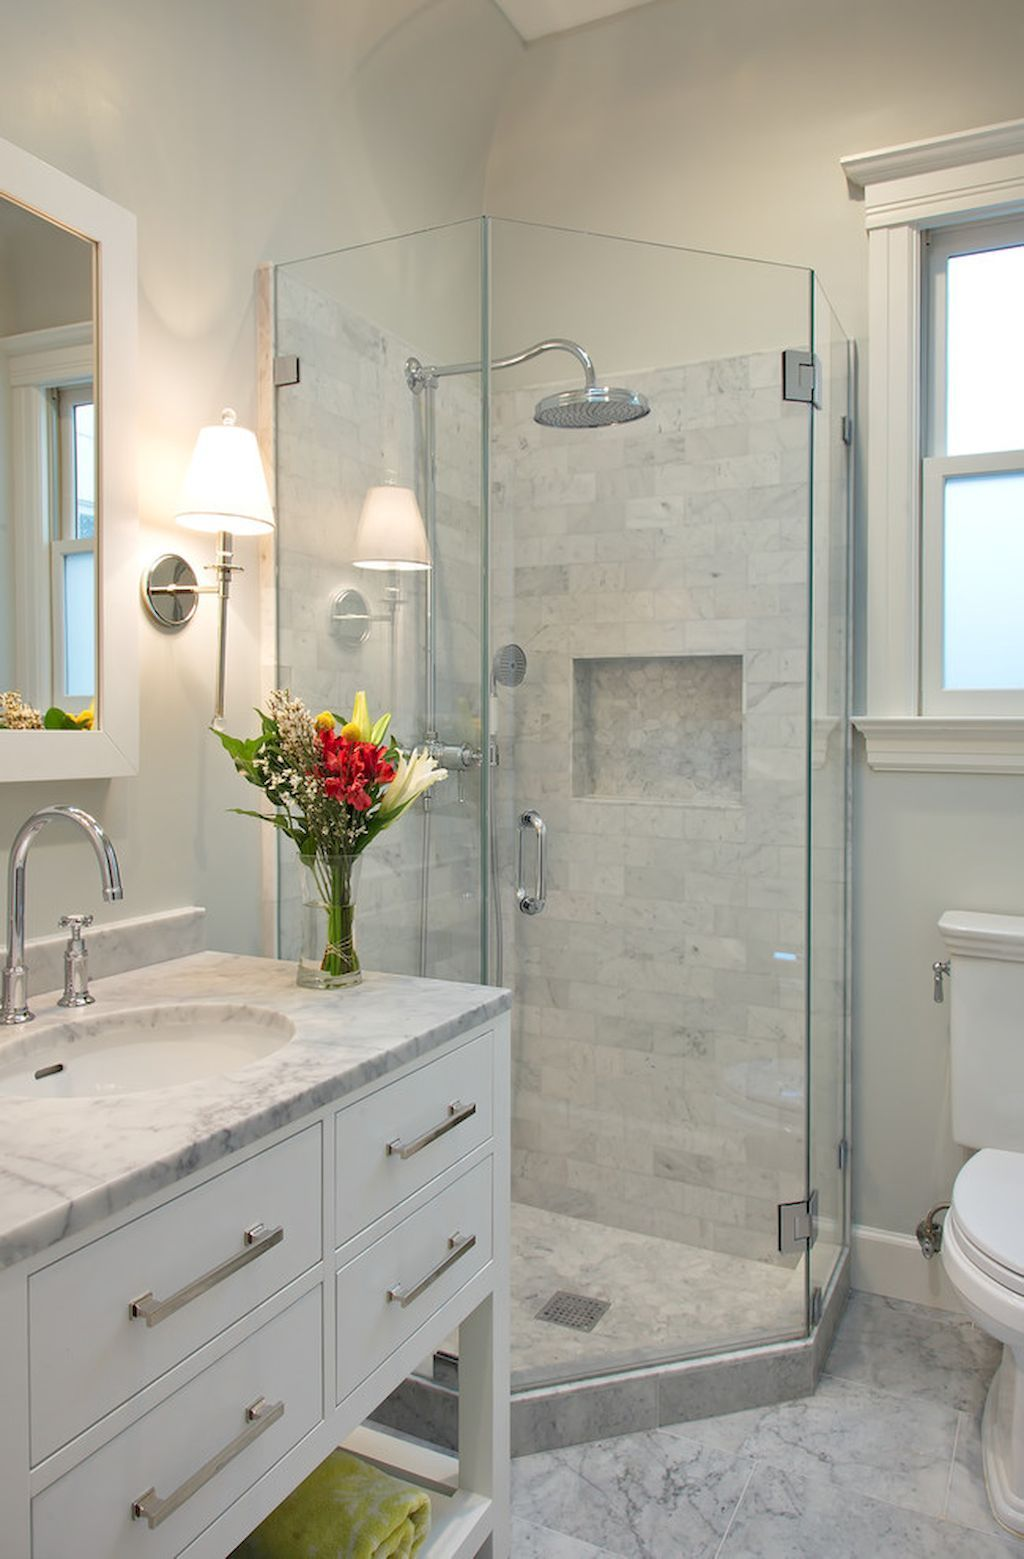 55 Cool Small Master Bathroom Remodel Ideas | Master bathrooms ...